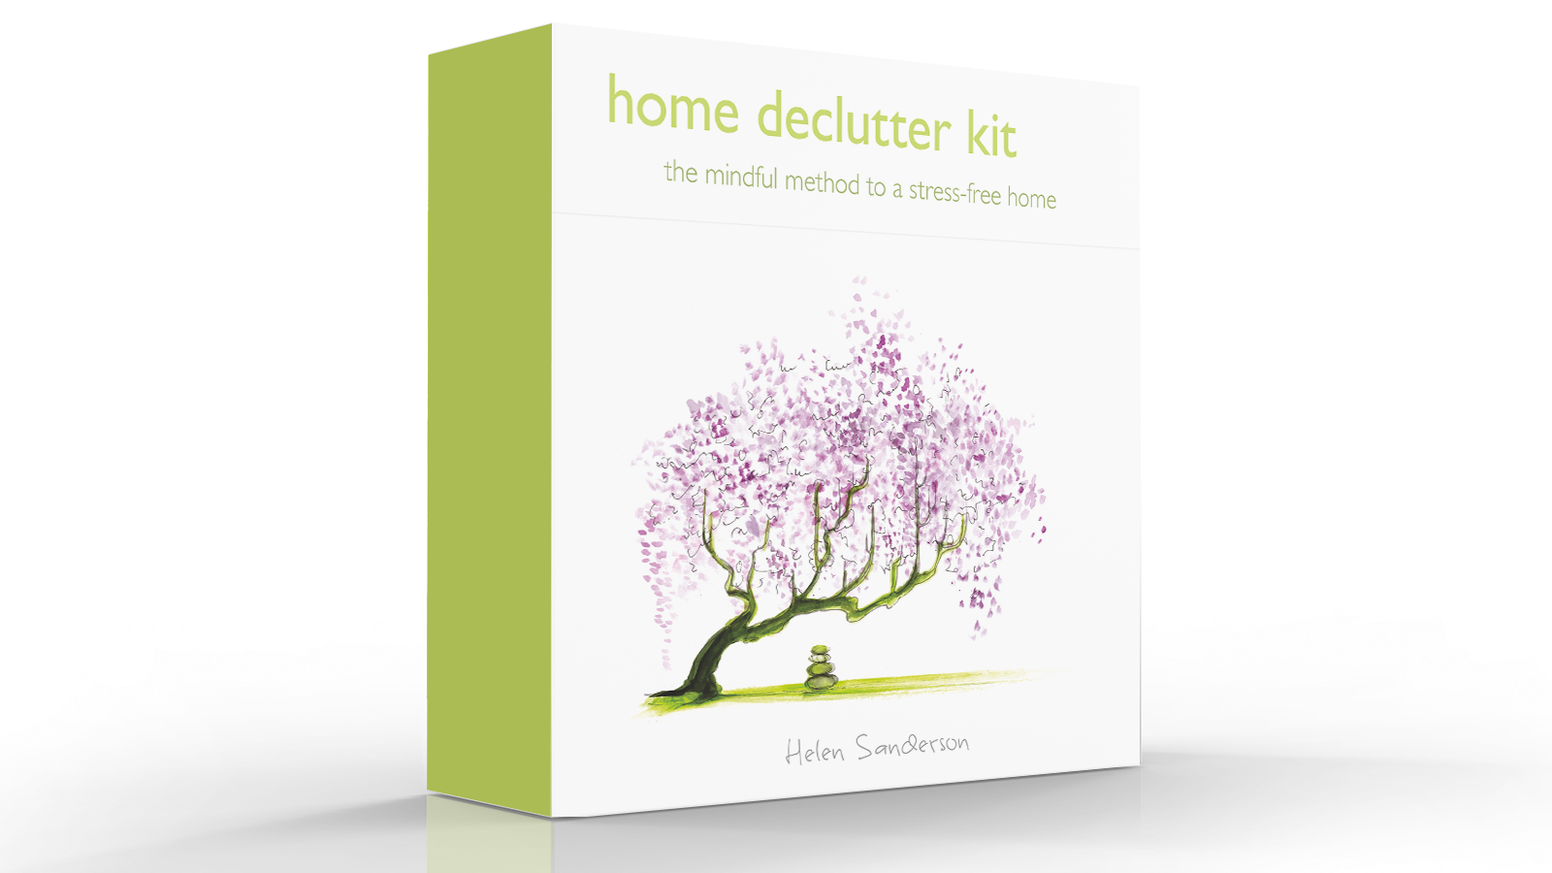 With an easy-to-follow guide and beautiful illustrations, this kit reveals the secrets to creating a calmer, simpler, clutter-free home